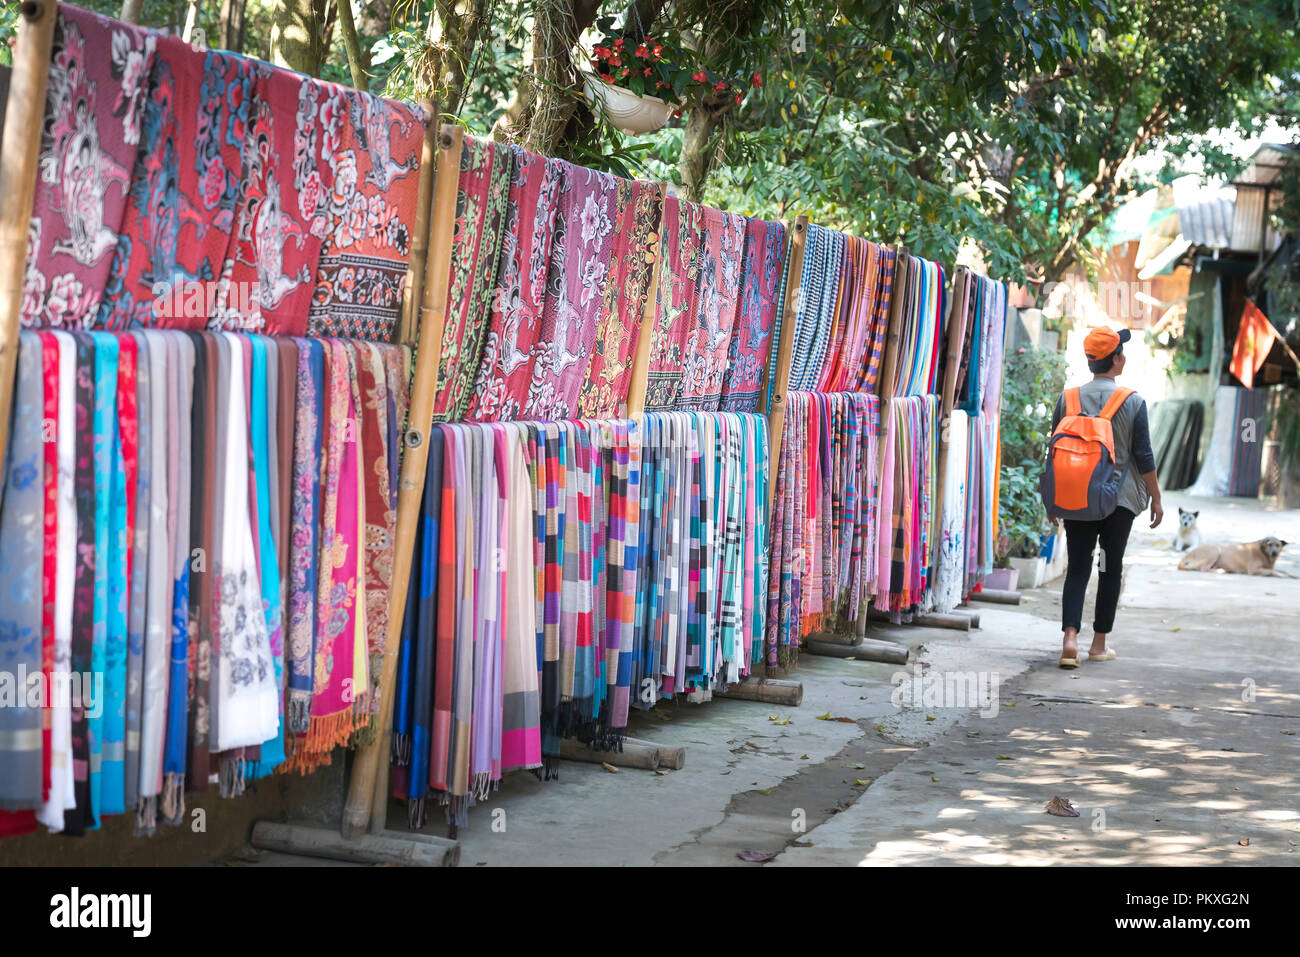 The shop selling handmade fabrics, skirts and brocade weaving made by Thai ethnic minority people. - Stock Image